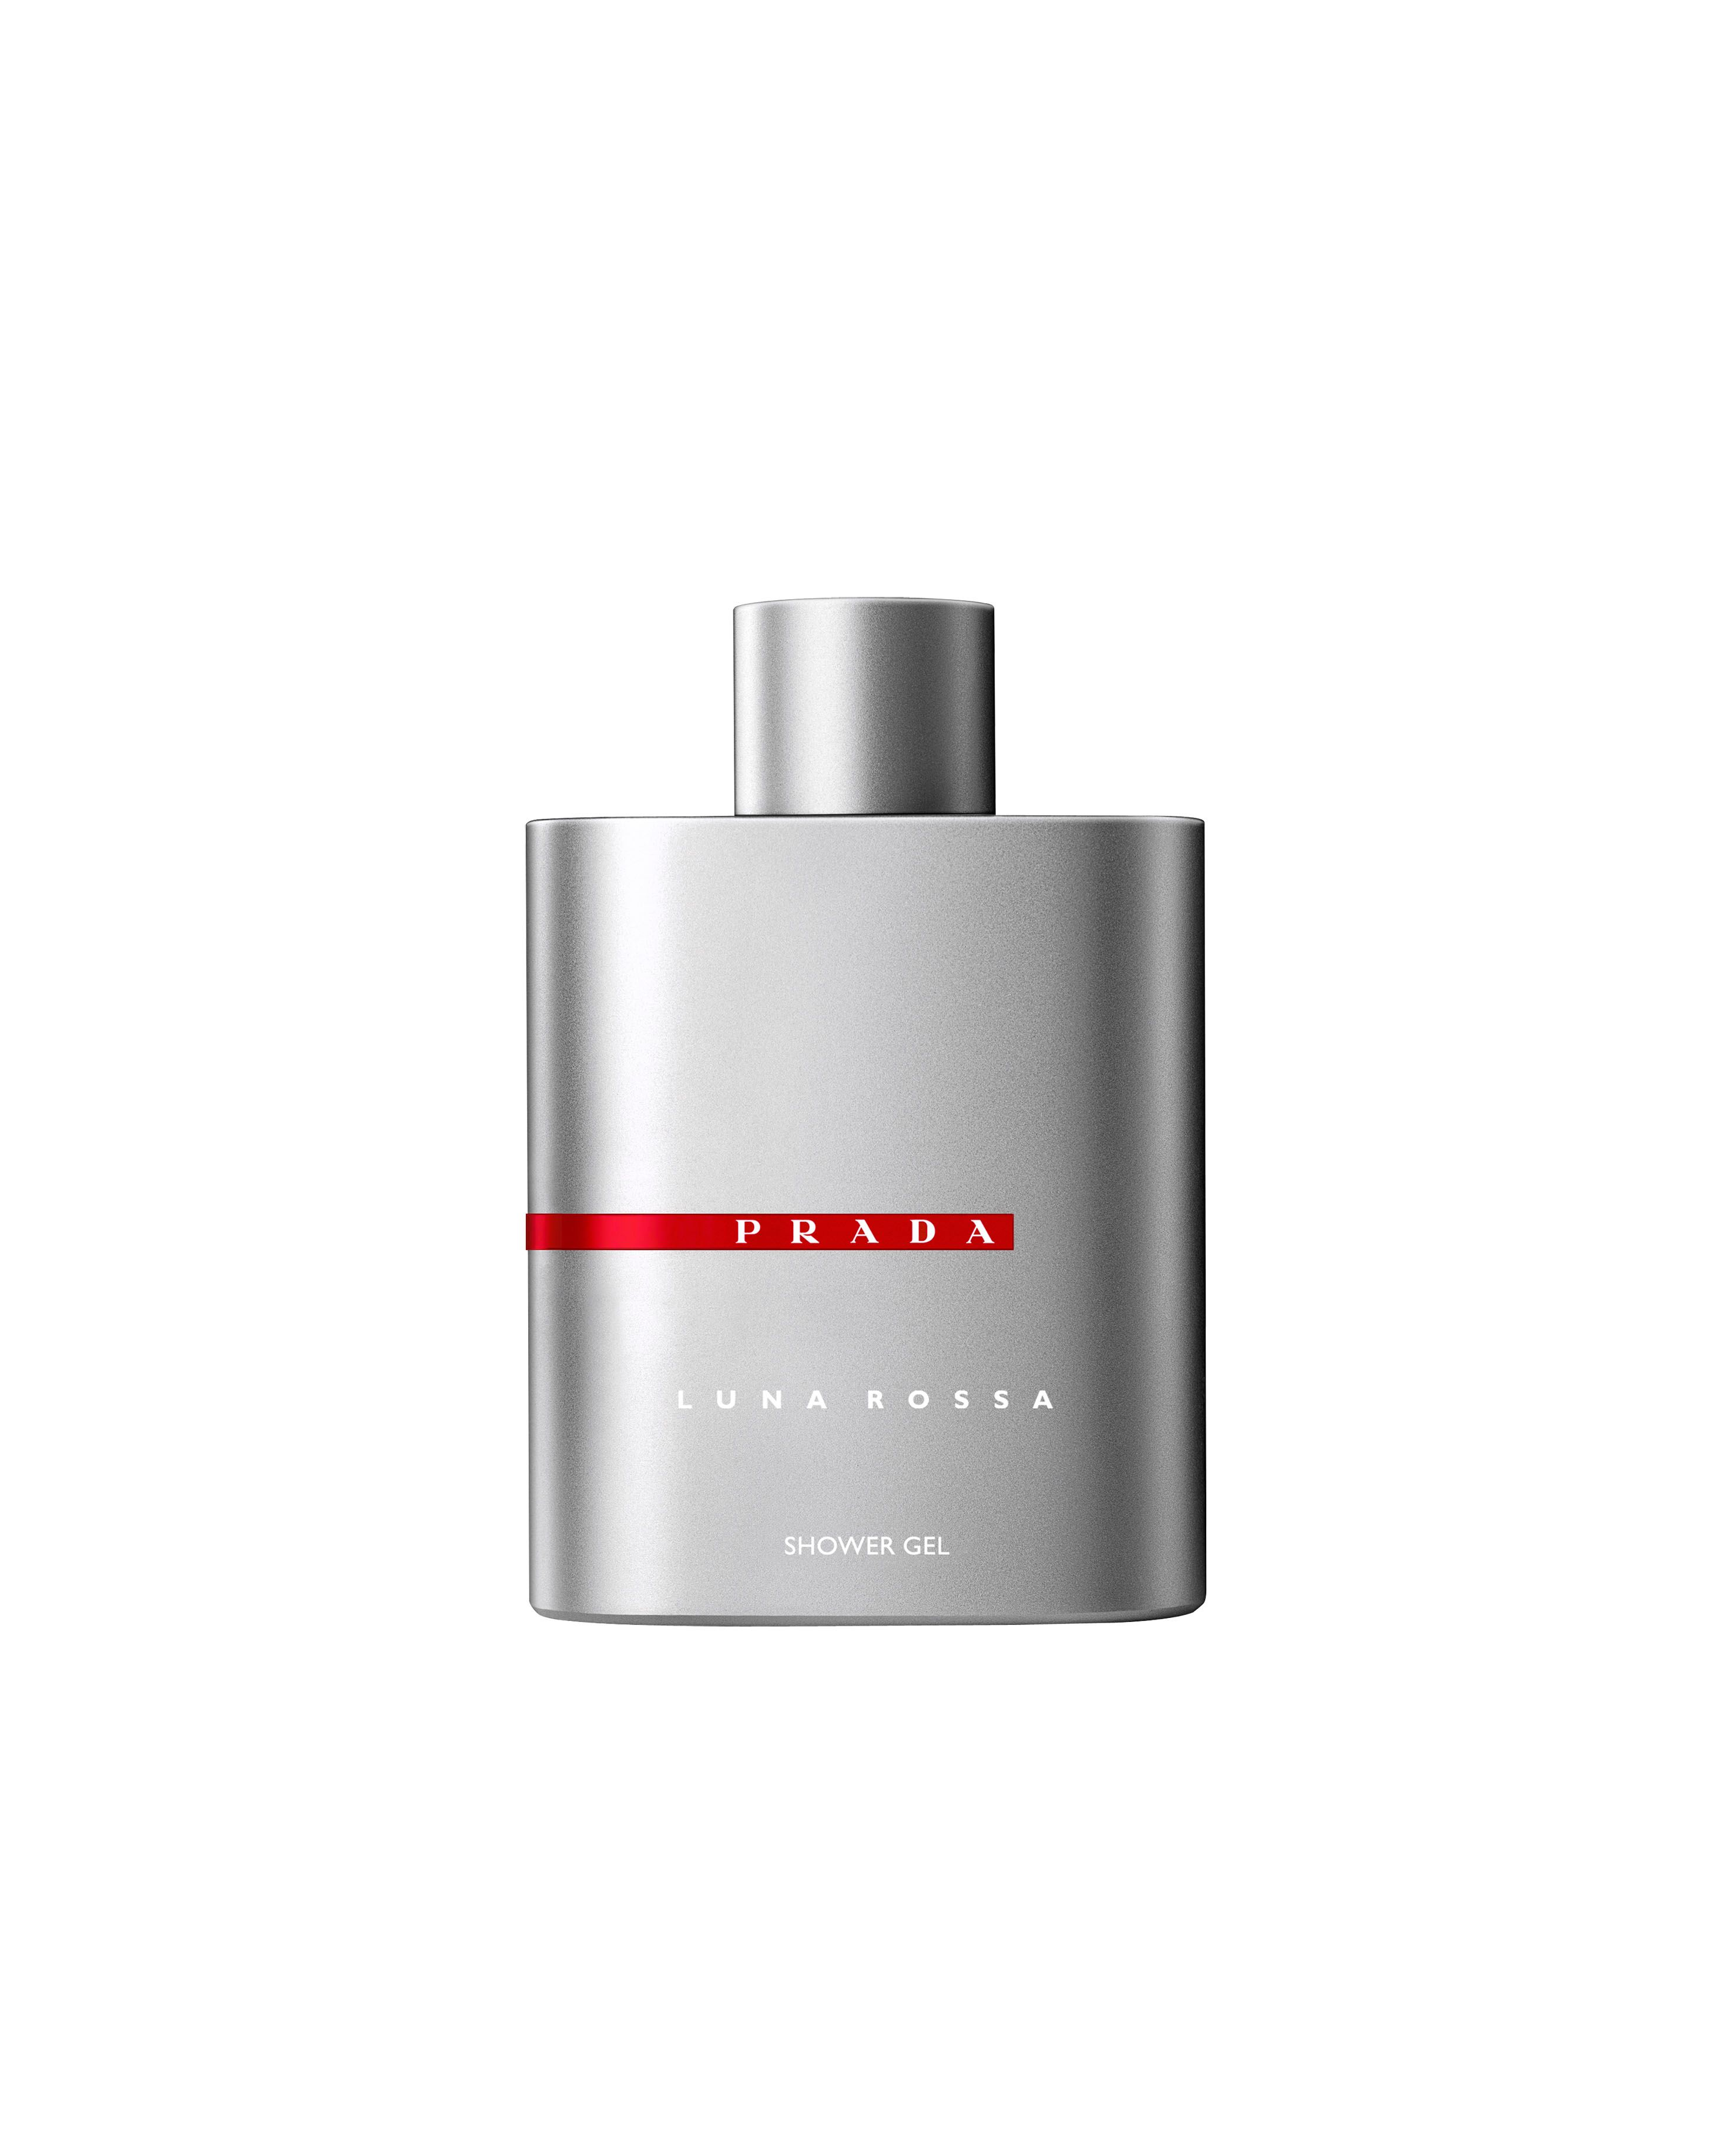 Luna Rossa Shower Gel 200ml